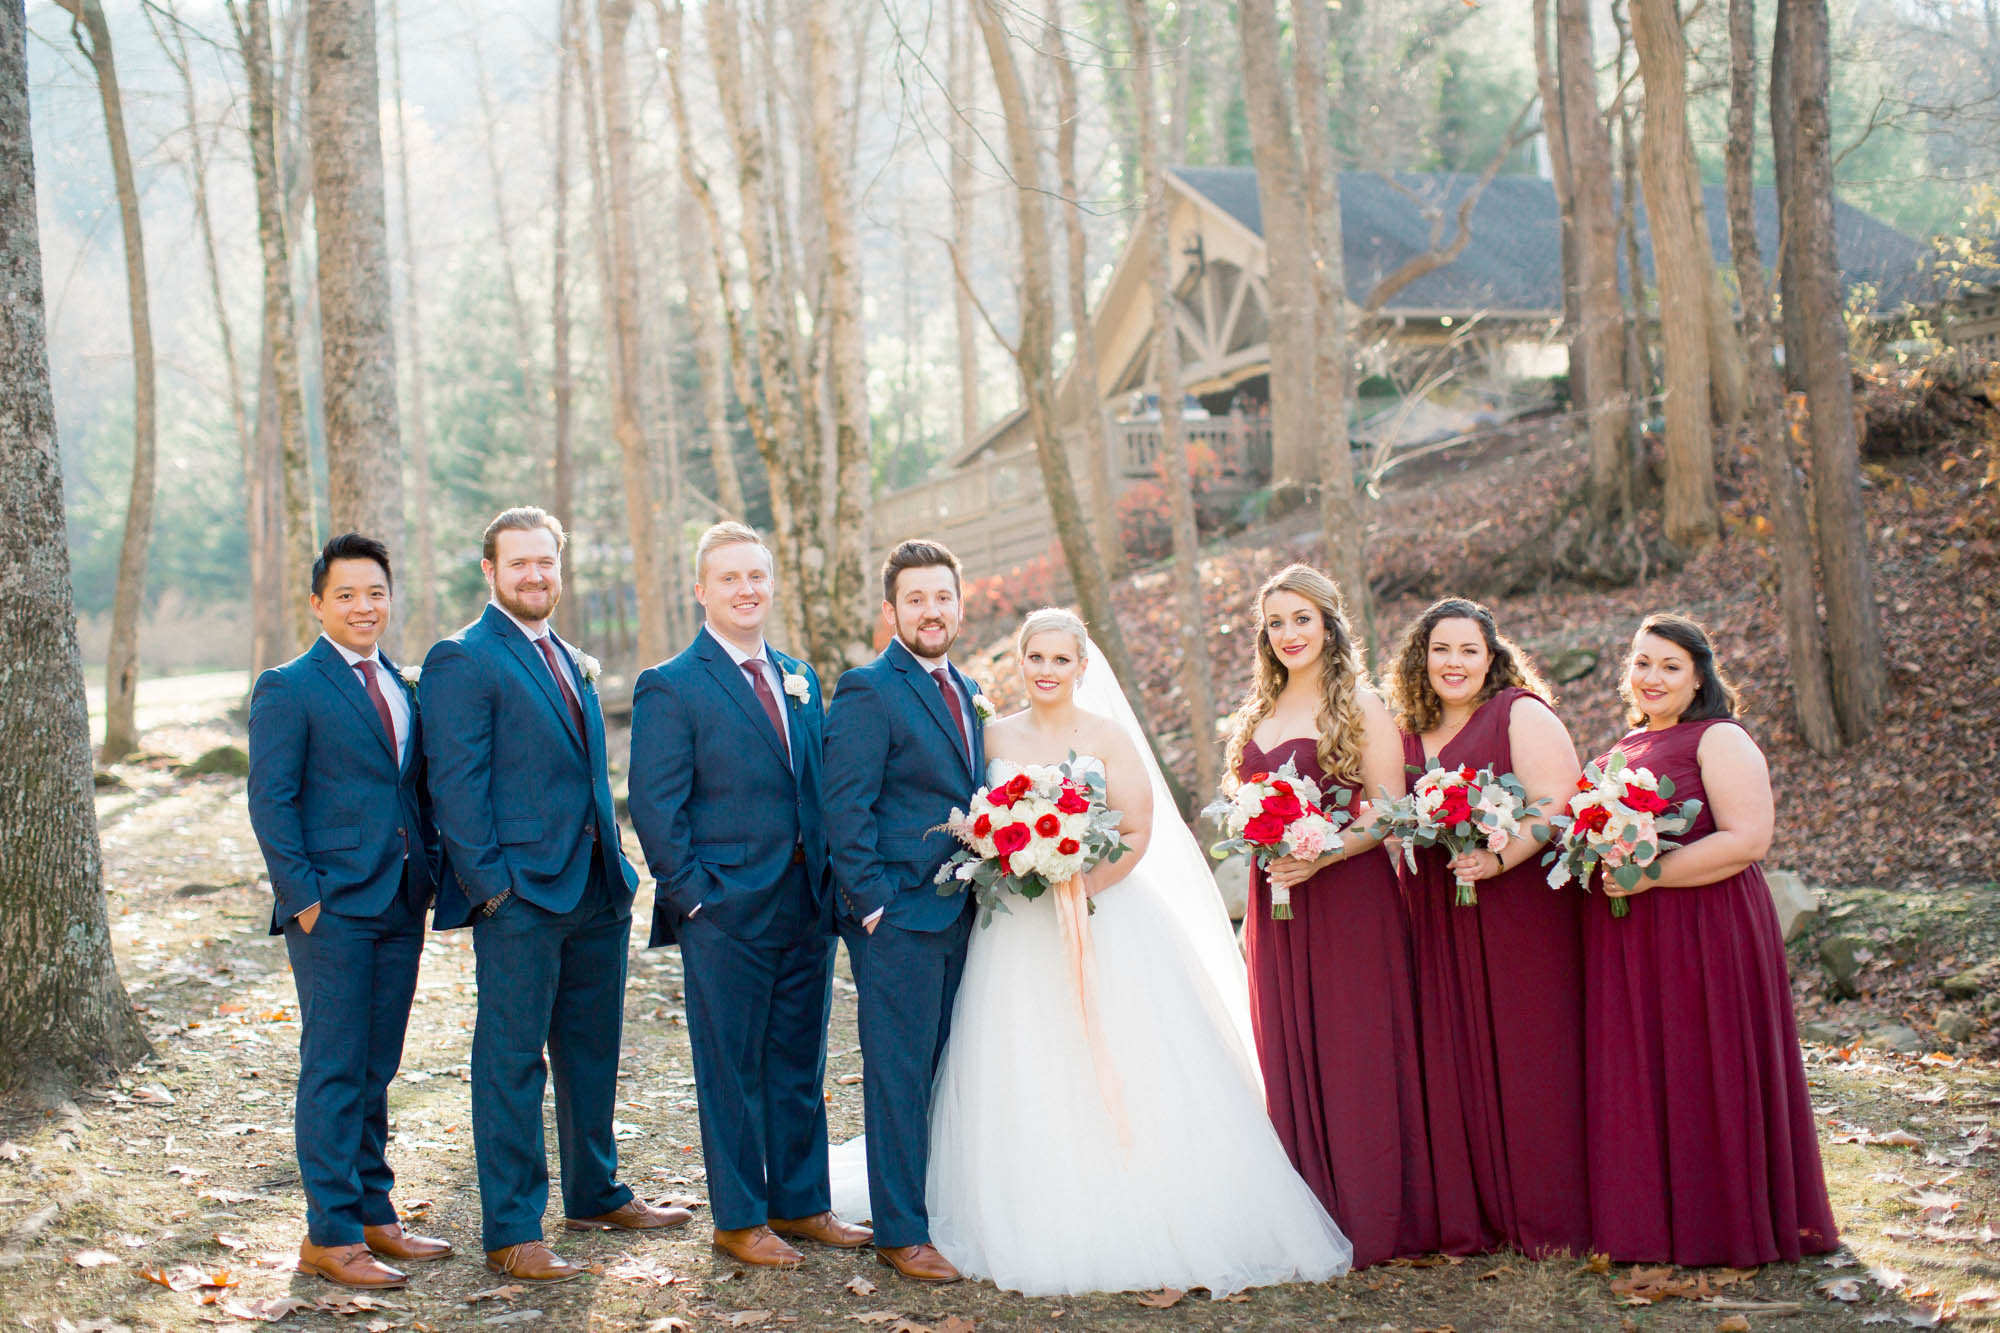 Bridal party mountain wedding hawkesdene Andrews, NC